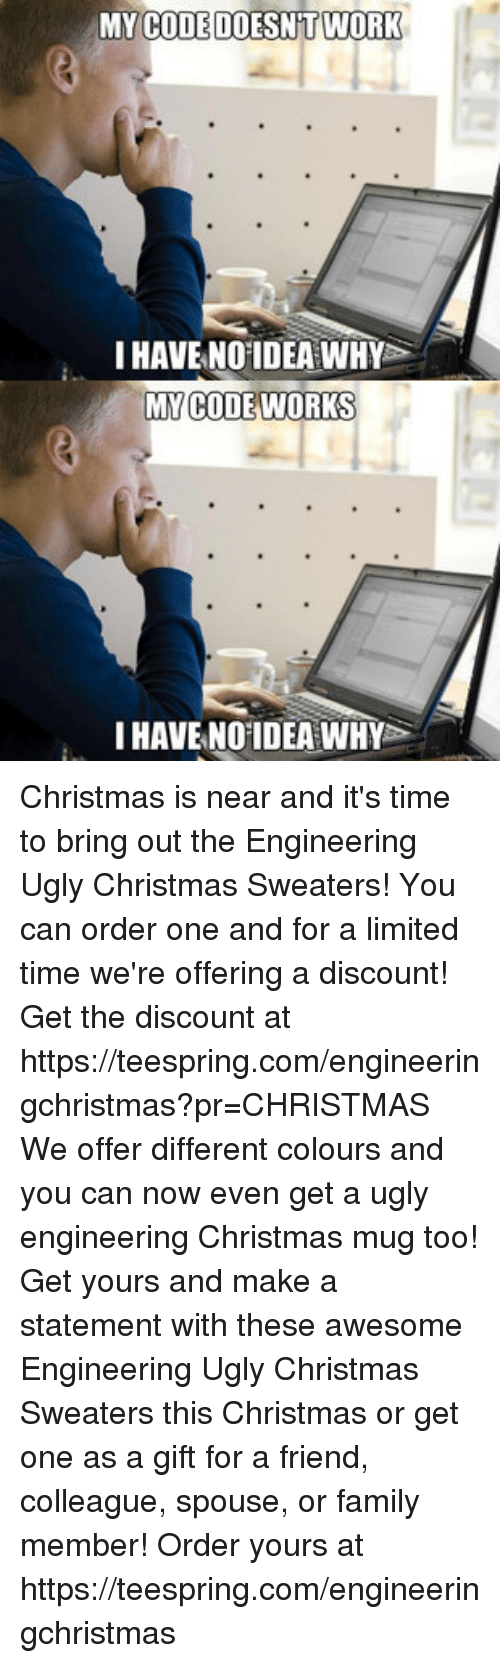 My Code Doesnt Work: MY CODE DOESN'T  WORK  HAVE NO IDEA WHY  MY CODE WORKS  HAVE NO IDEA WHY Christmas is near and it's time to bring out the Engineering Ugly Christmas Sweaters! You can order one and for a limited time we're offering a discount! Get the discount at https://teespring.com/engineeringchristmas?pr=CHRISTMAS  We offer different colours and you can now even get a ugly engineering Christmas mug too! Get yours and make a statement with these awesome Engineering Ugly Christmas Sweaters this Christmas or get one as a gift for a friend, colleague, spouse, or family member! Order yours at https://teespring.com/engineeringchristmas